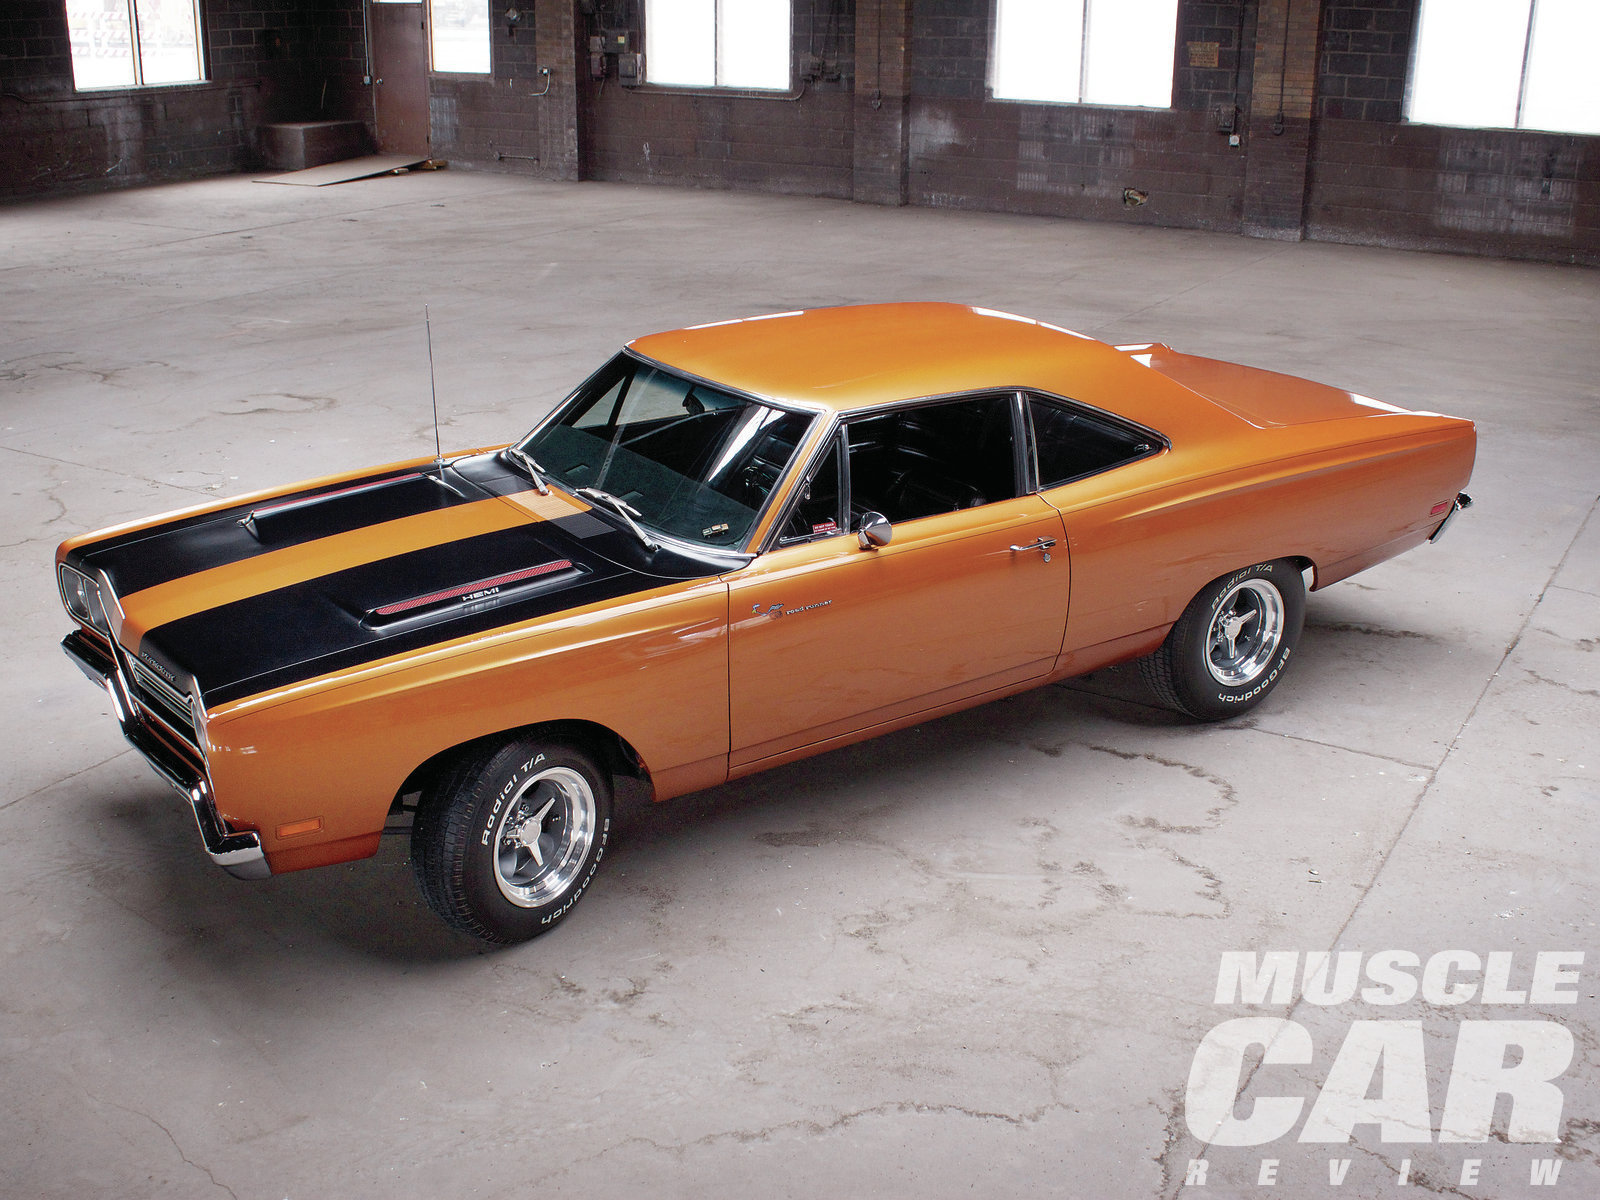 73 plymouth road runner wiring diagram wiring library rh 11 akszer eu 1969 plymouth road runner [ 1600 x 1200 Pixel ]